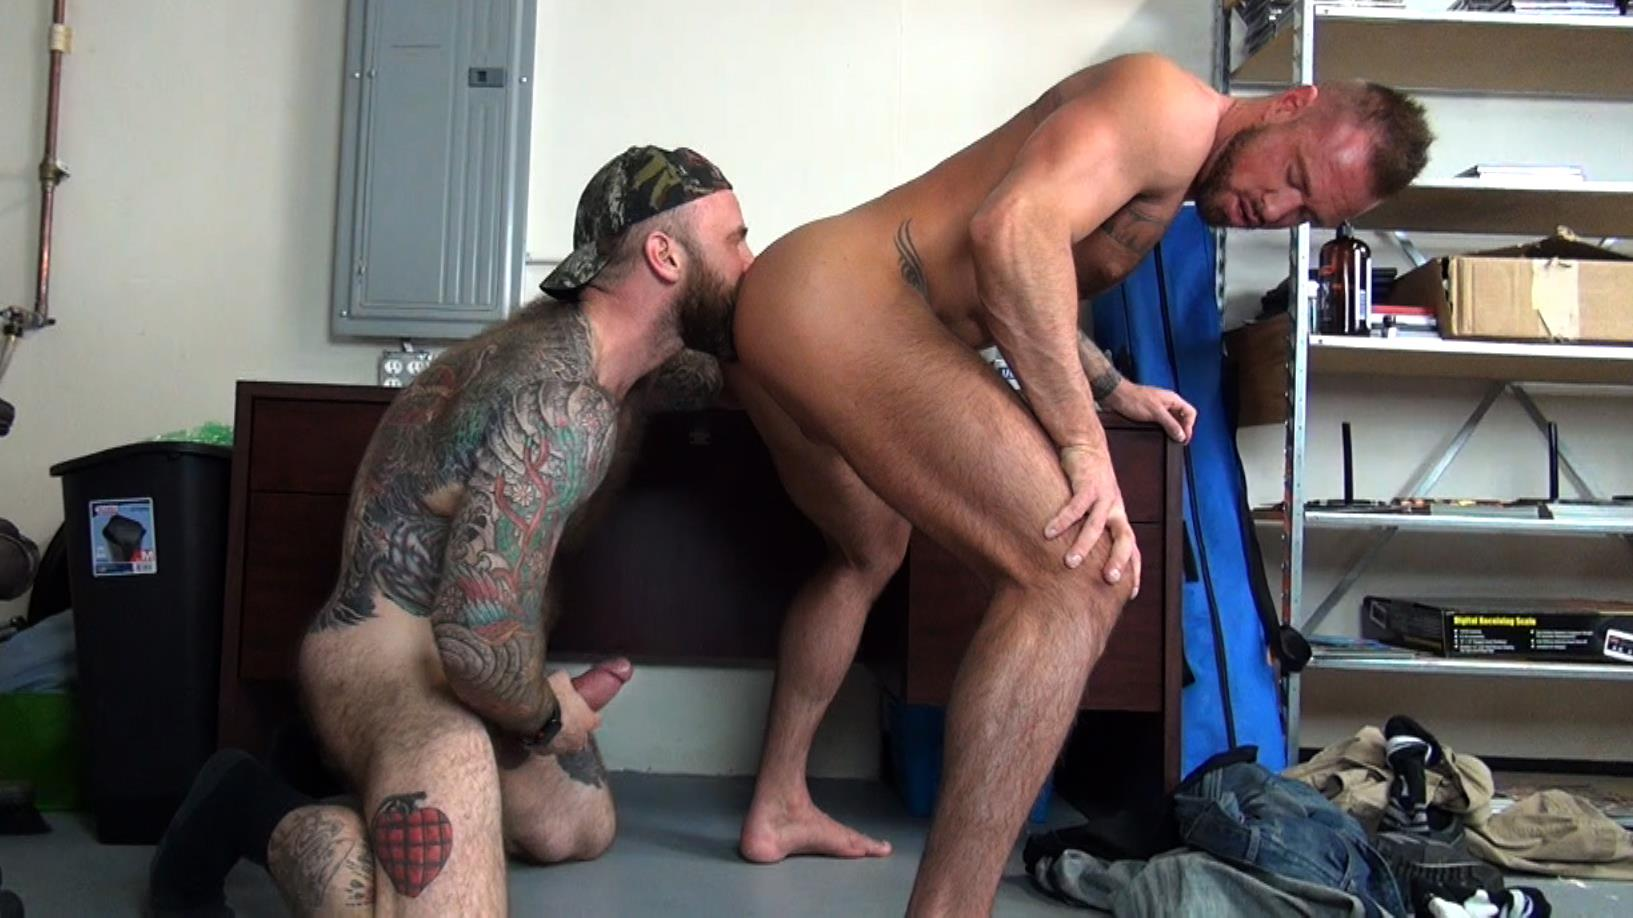 Raw-Fuck-Club-Jack-Dixon-and-Michael-Roman-Hairy-Muscle-Daddy-Bareback-Gay-Sex-Video-02 Taking A Raw Ride On Jack Dixon's Big Fat Daddy Cock